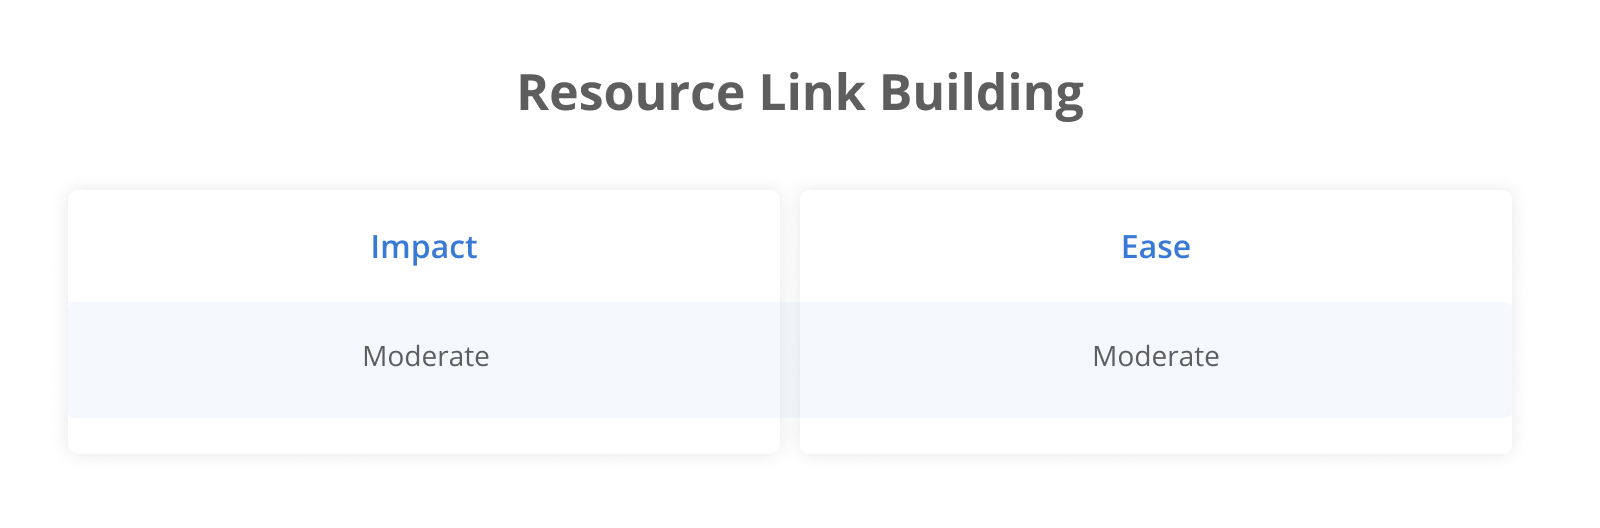 Resource Link Building: Impact Moderate; Ease Moderate